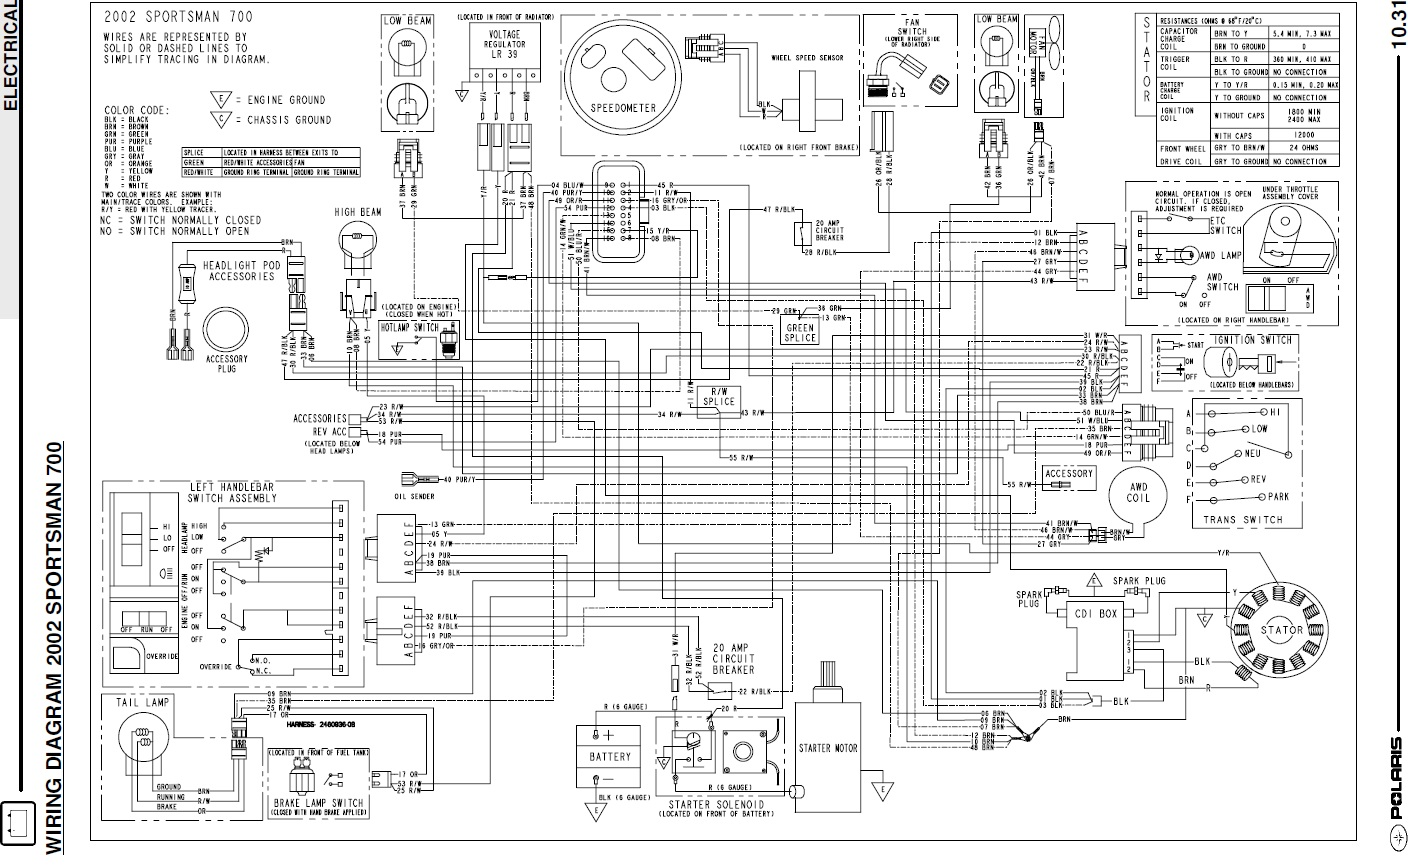 25374d1432945183 04 sportsman 700 no spark wiring diag 700 polaris sportsman wiring harness polaris sportsman 800 wiring arctic cat prowler 700 fuse box diagram at gsmportal.co